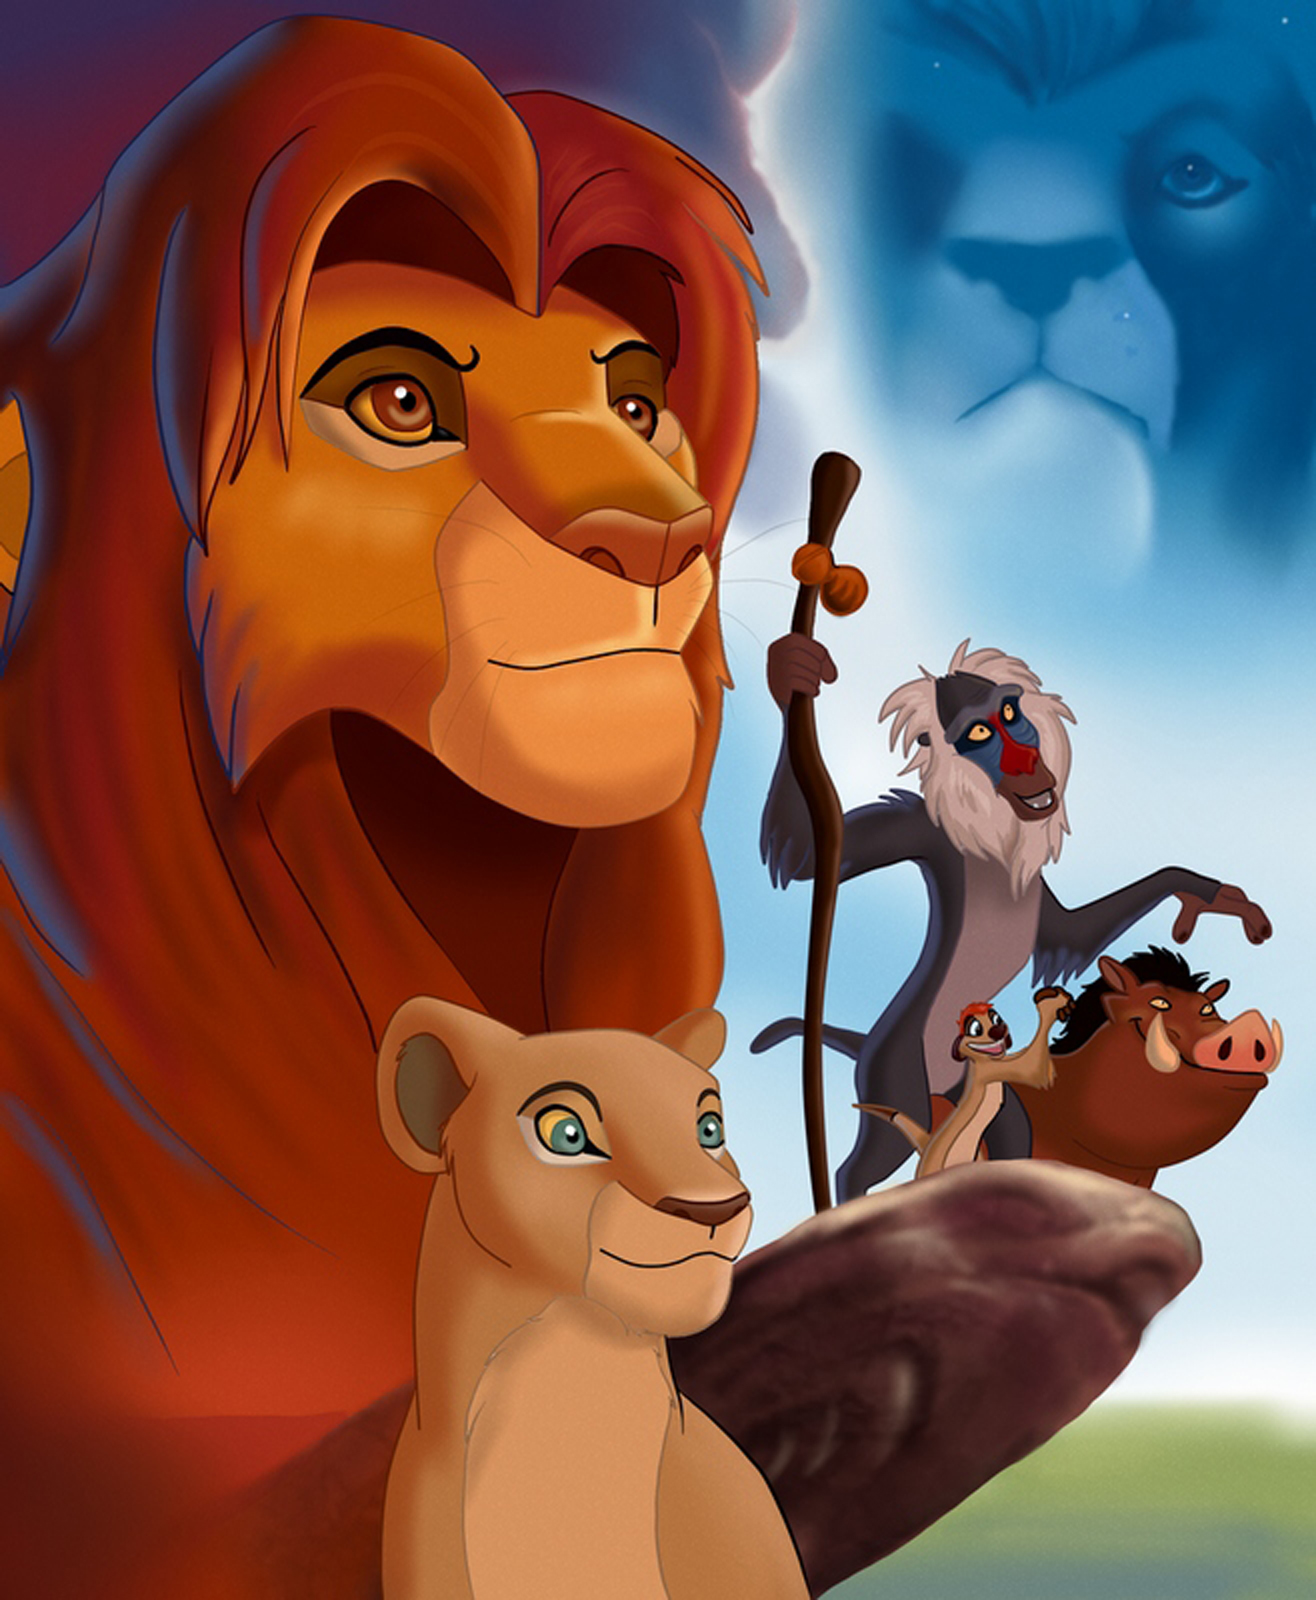 Central Wallpaper: Simba The Lion King and Other ...